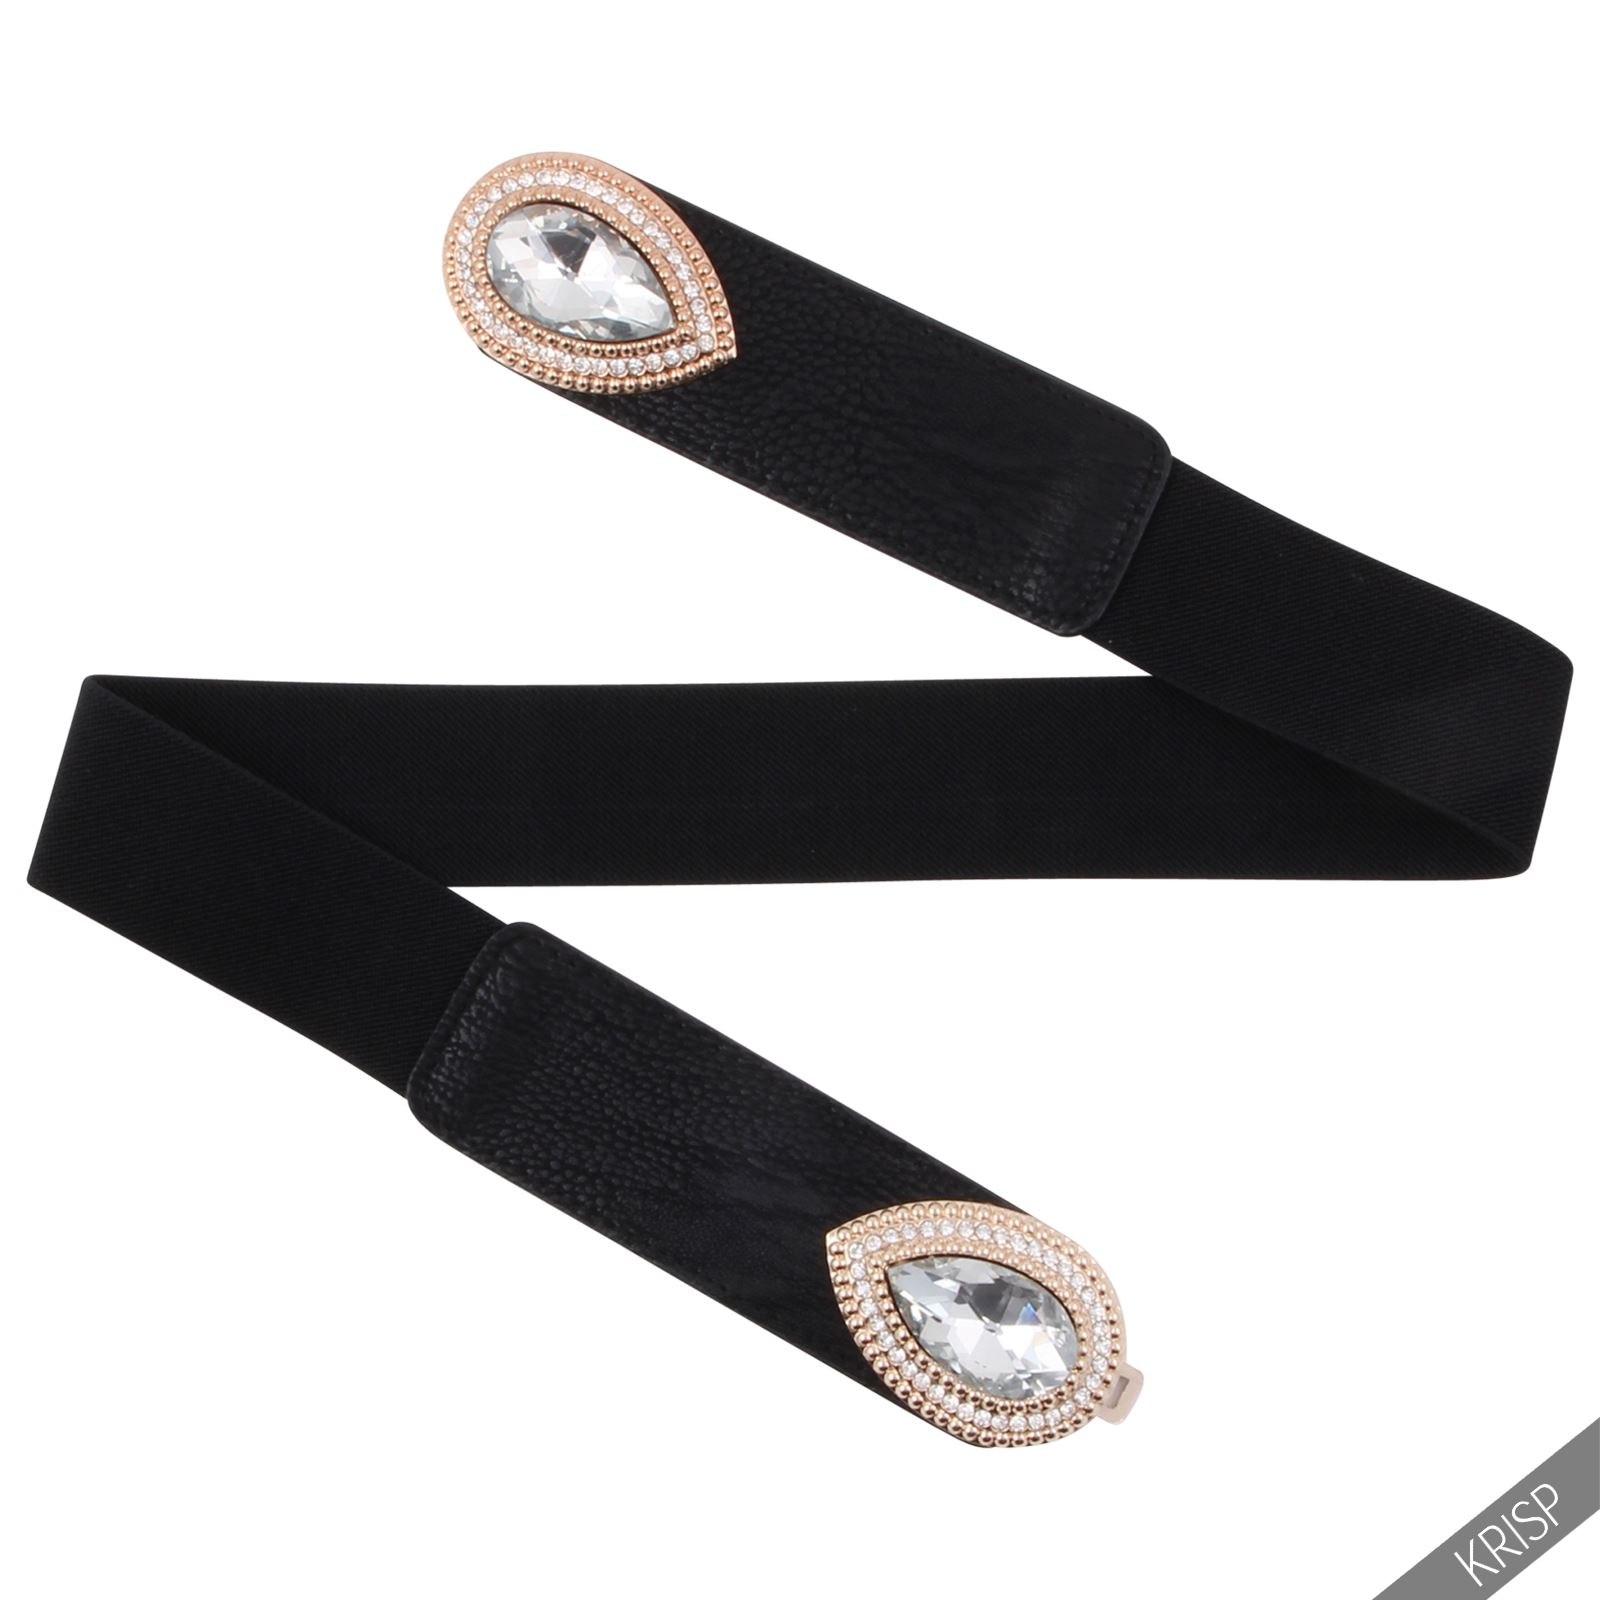 Lady Diamante Belts, Wholesale Various High Quality Lady Diamante Belts Products from Global Lady Diamante Belts Suppliers and Lady Diamante Belts Factory,Importer,Exporter at thritingetqay.cf